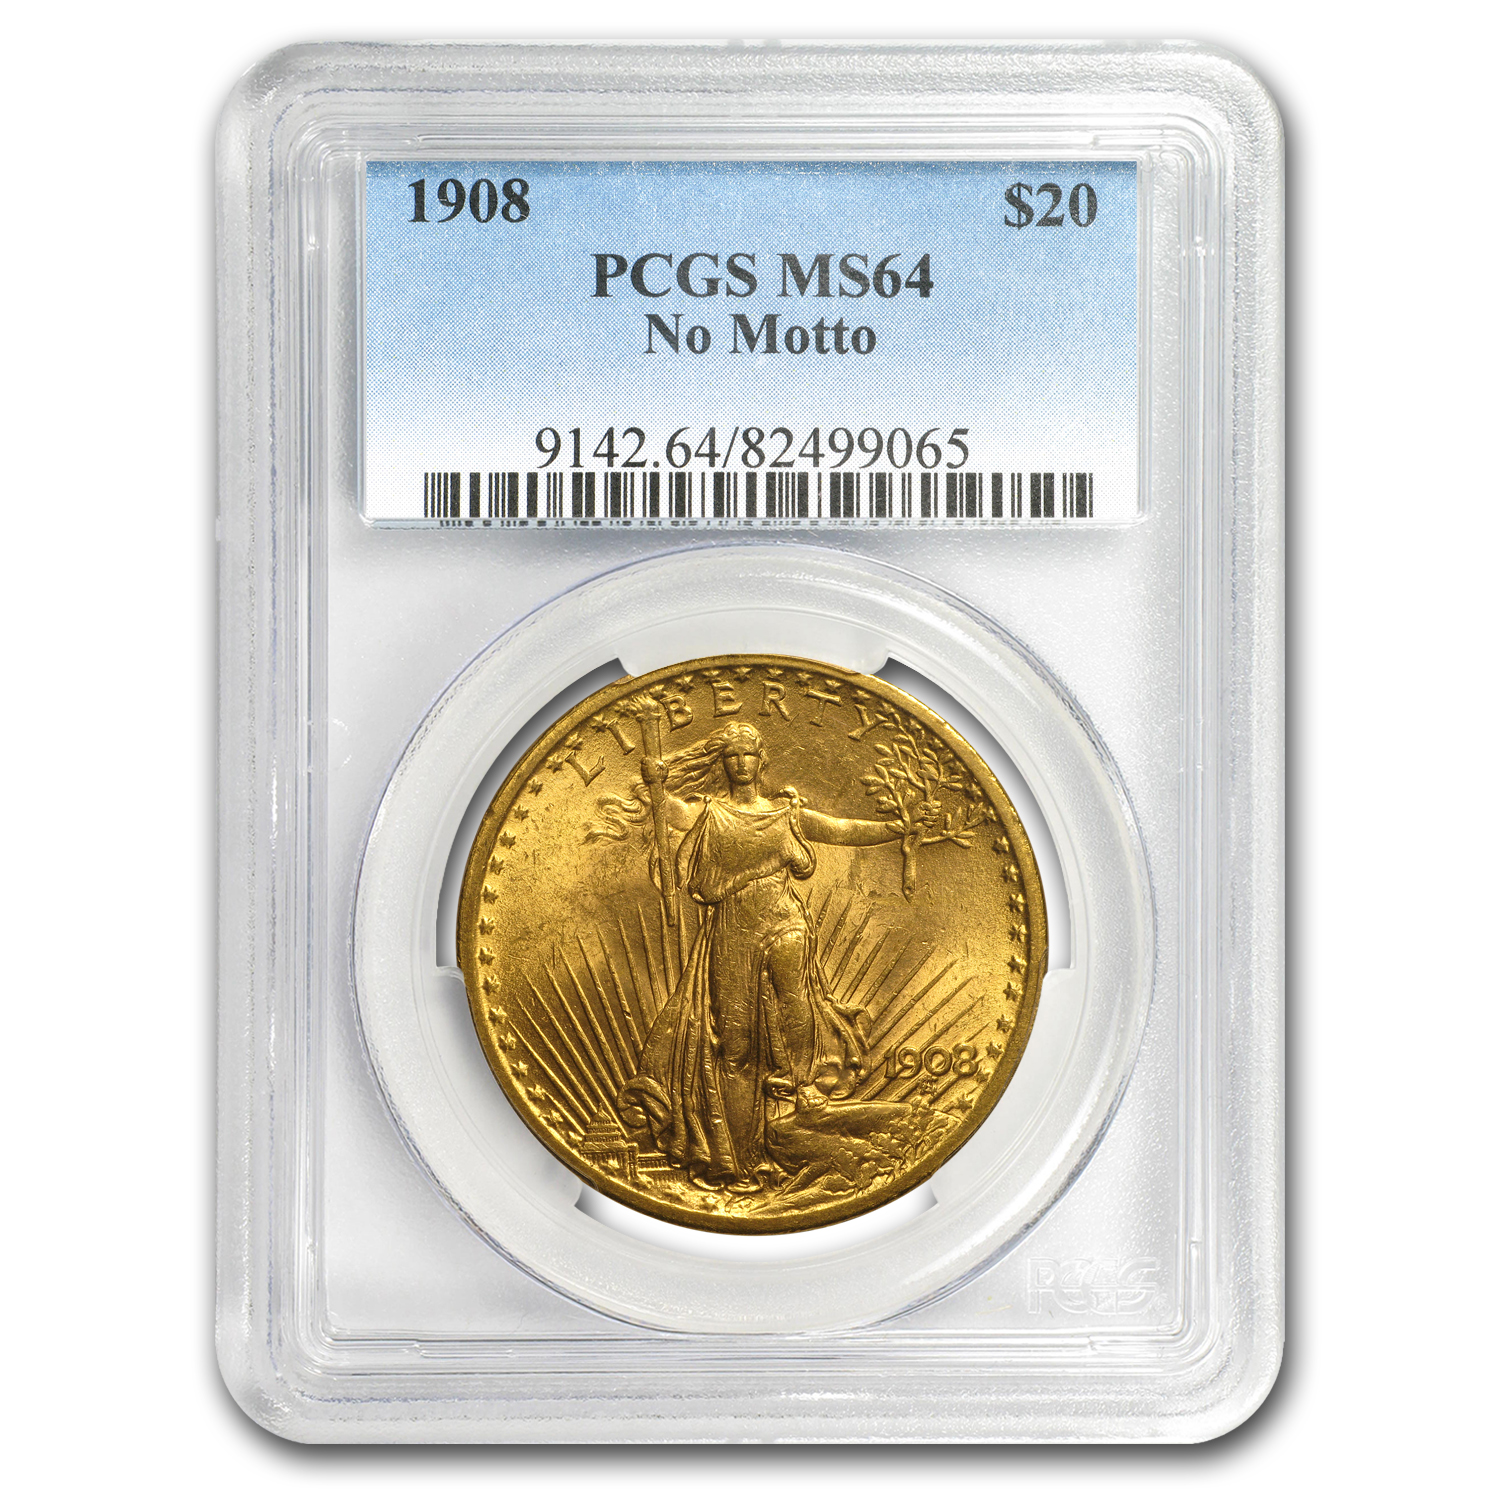 1908 $20 St. Gaudens Gold Double Eagle No Motto MS-64 PCGS